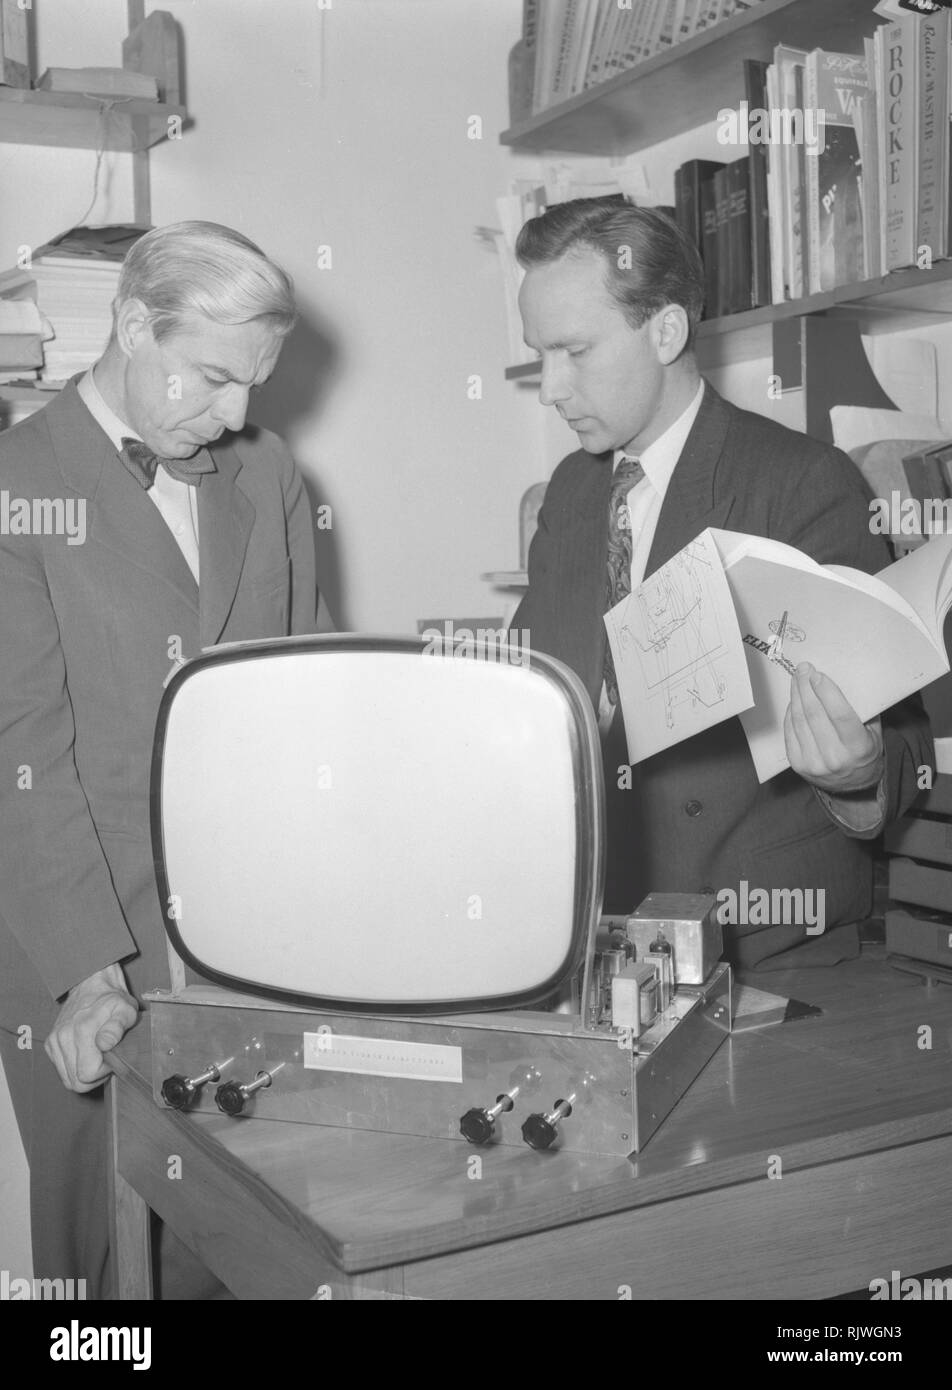 Television in the 1950s. A man with an early television set in production or testing at the Elfo company is experimenting with television technology. January 1954 - Stock Image